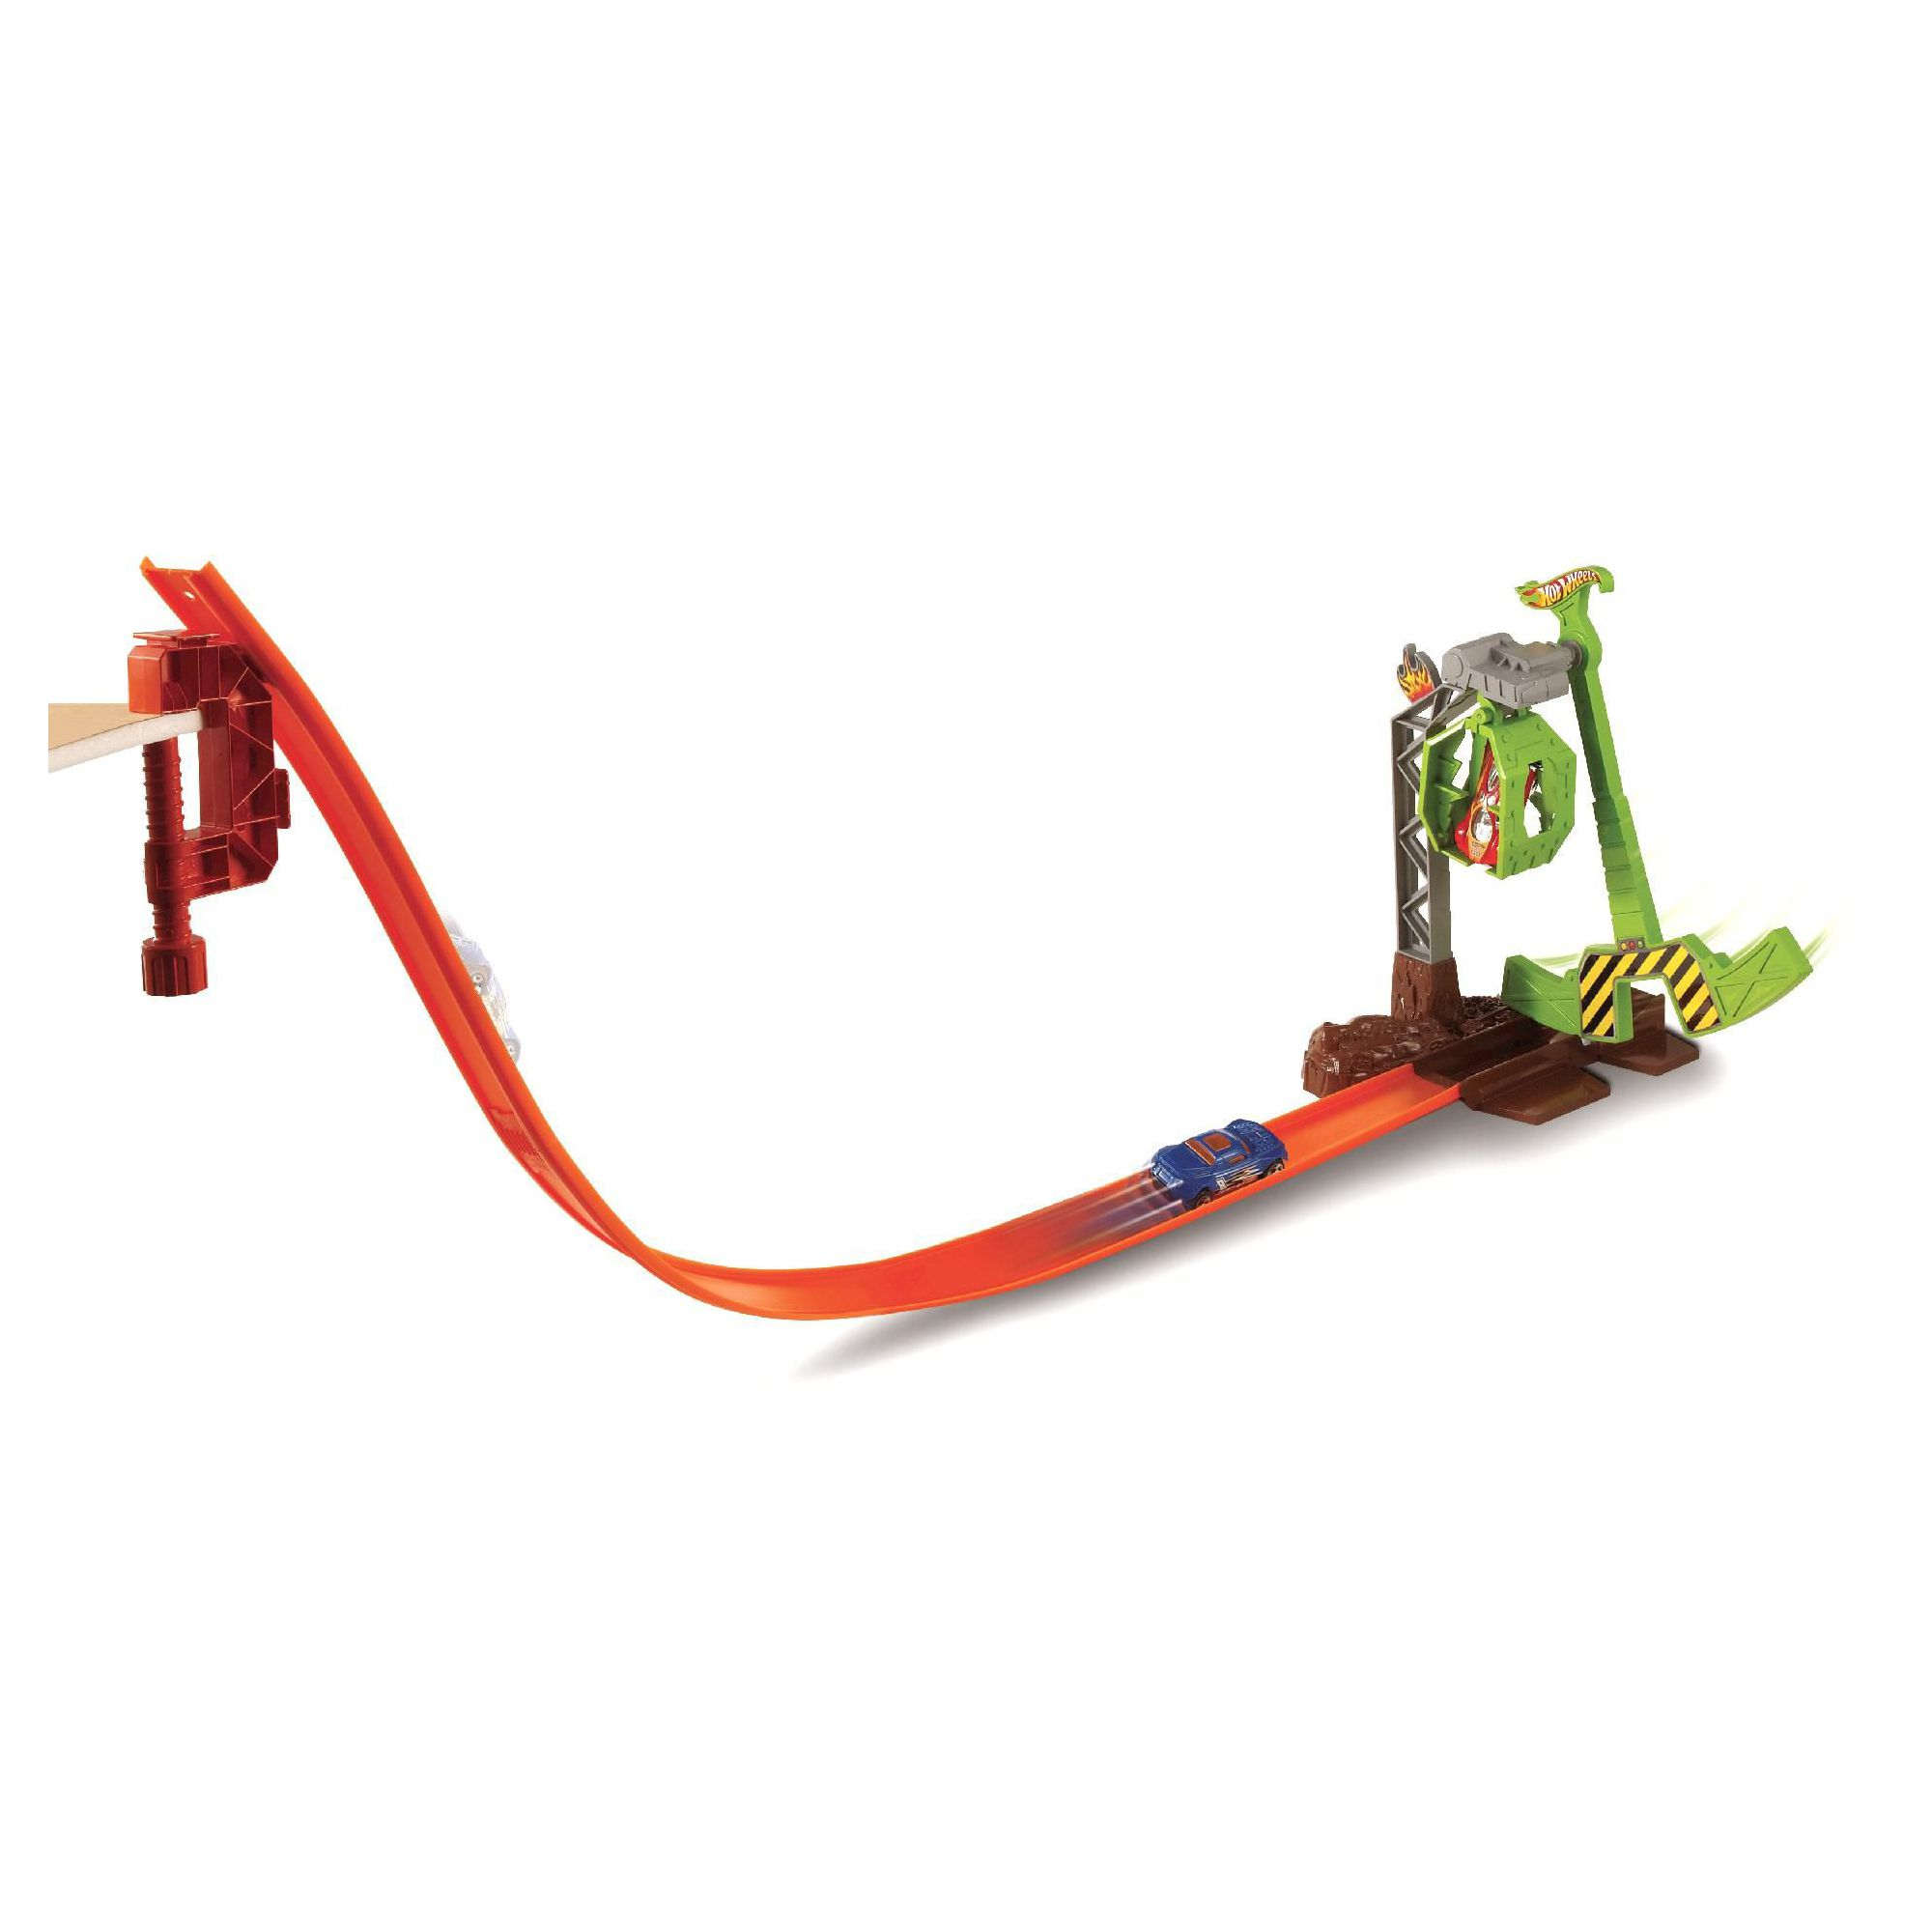 hot wheels loop track instructions